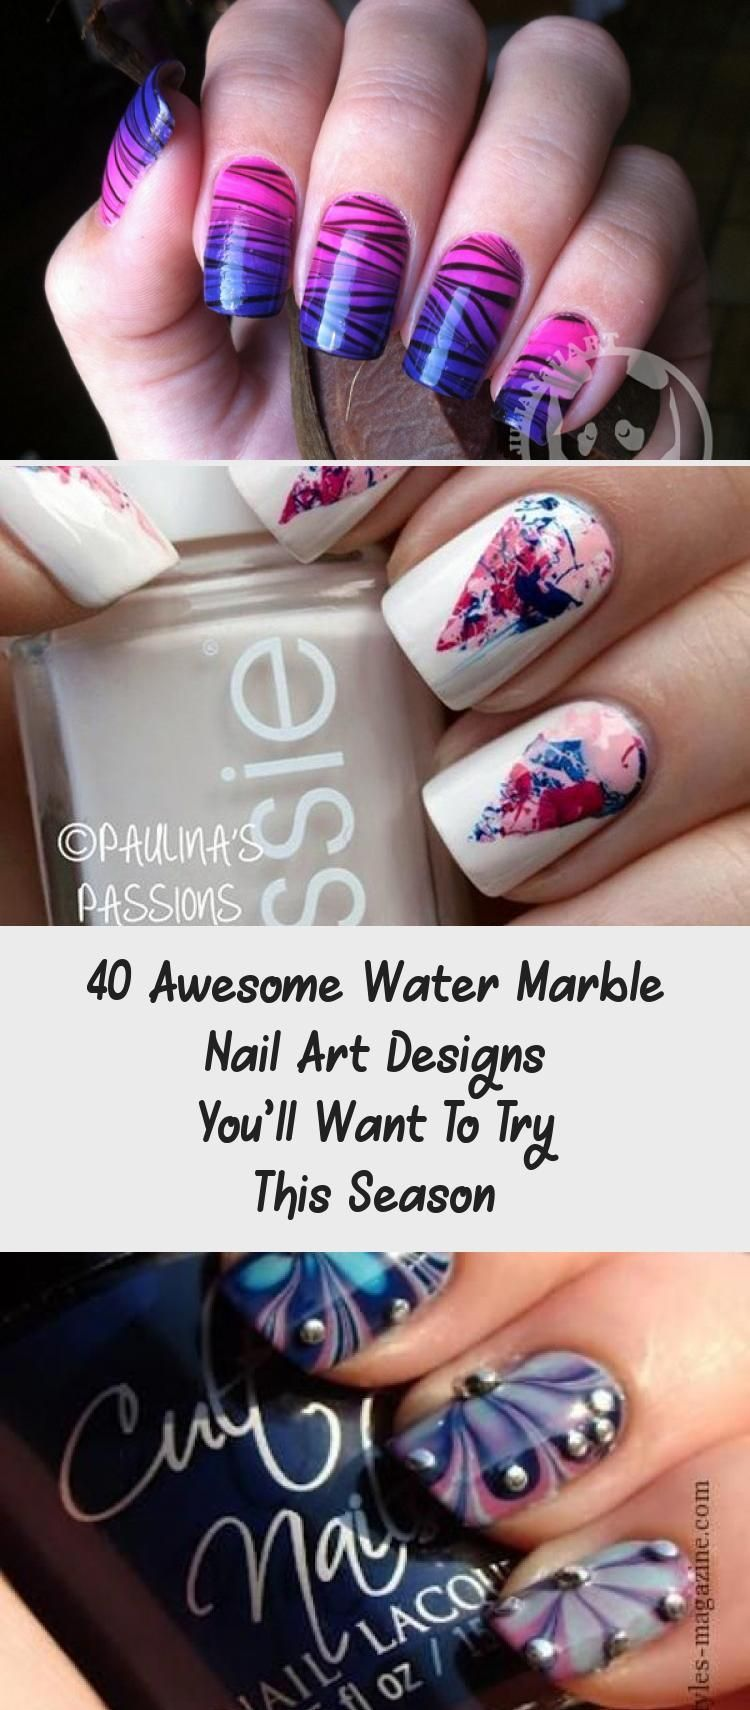 40 Awesome Water Marble Nail Art Designs You Ll Want To Try This Season Beauty In 2020 Water Marble Nail Art Water Marble Nails Nail Art Designs